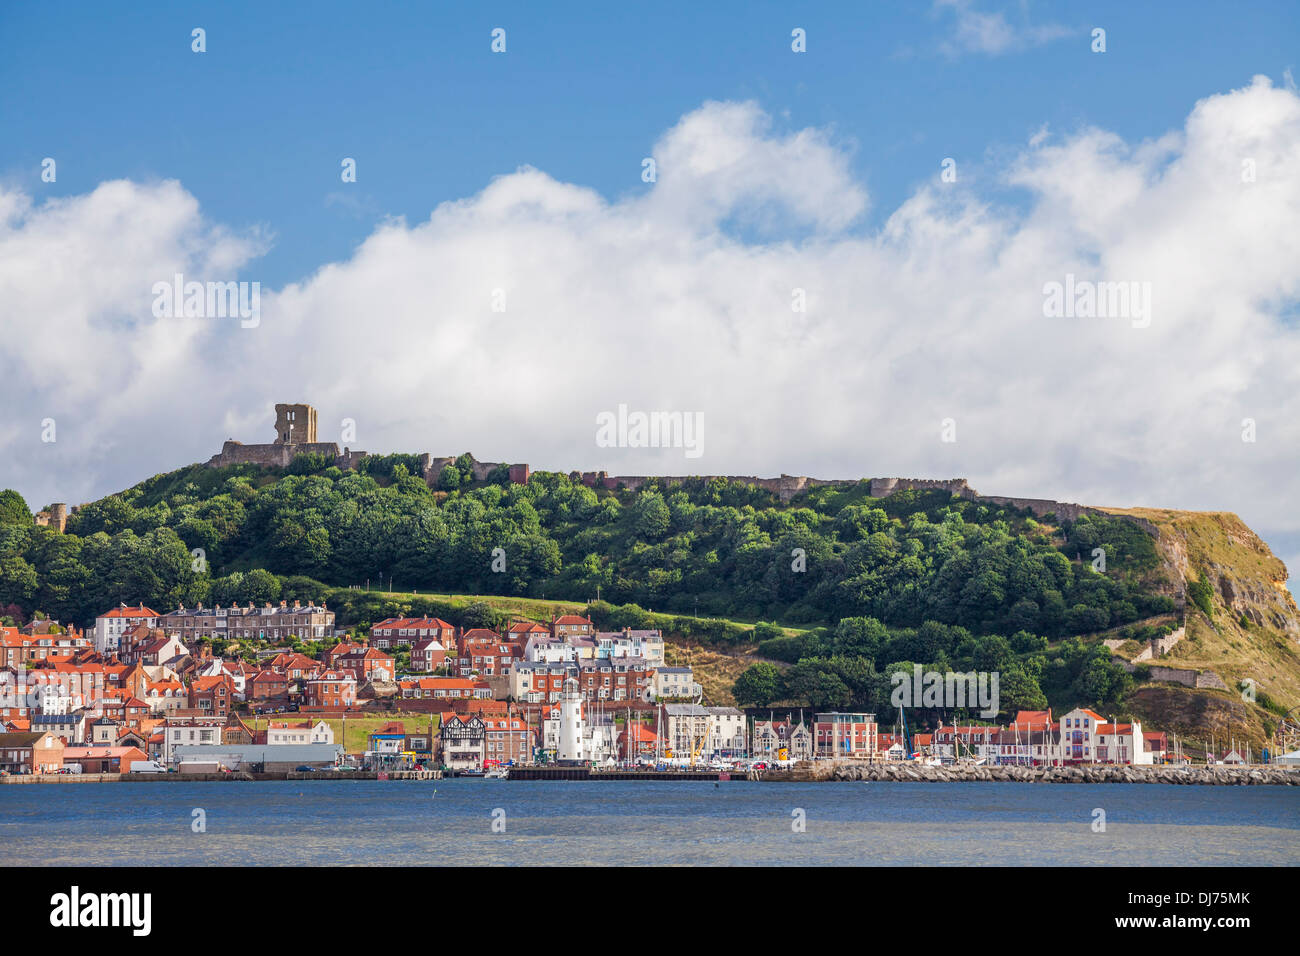 Scarborough, North Yorkshire. - Stock Image